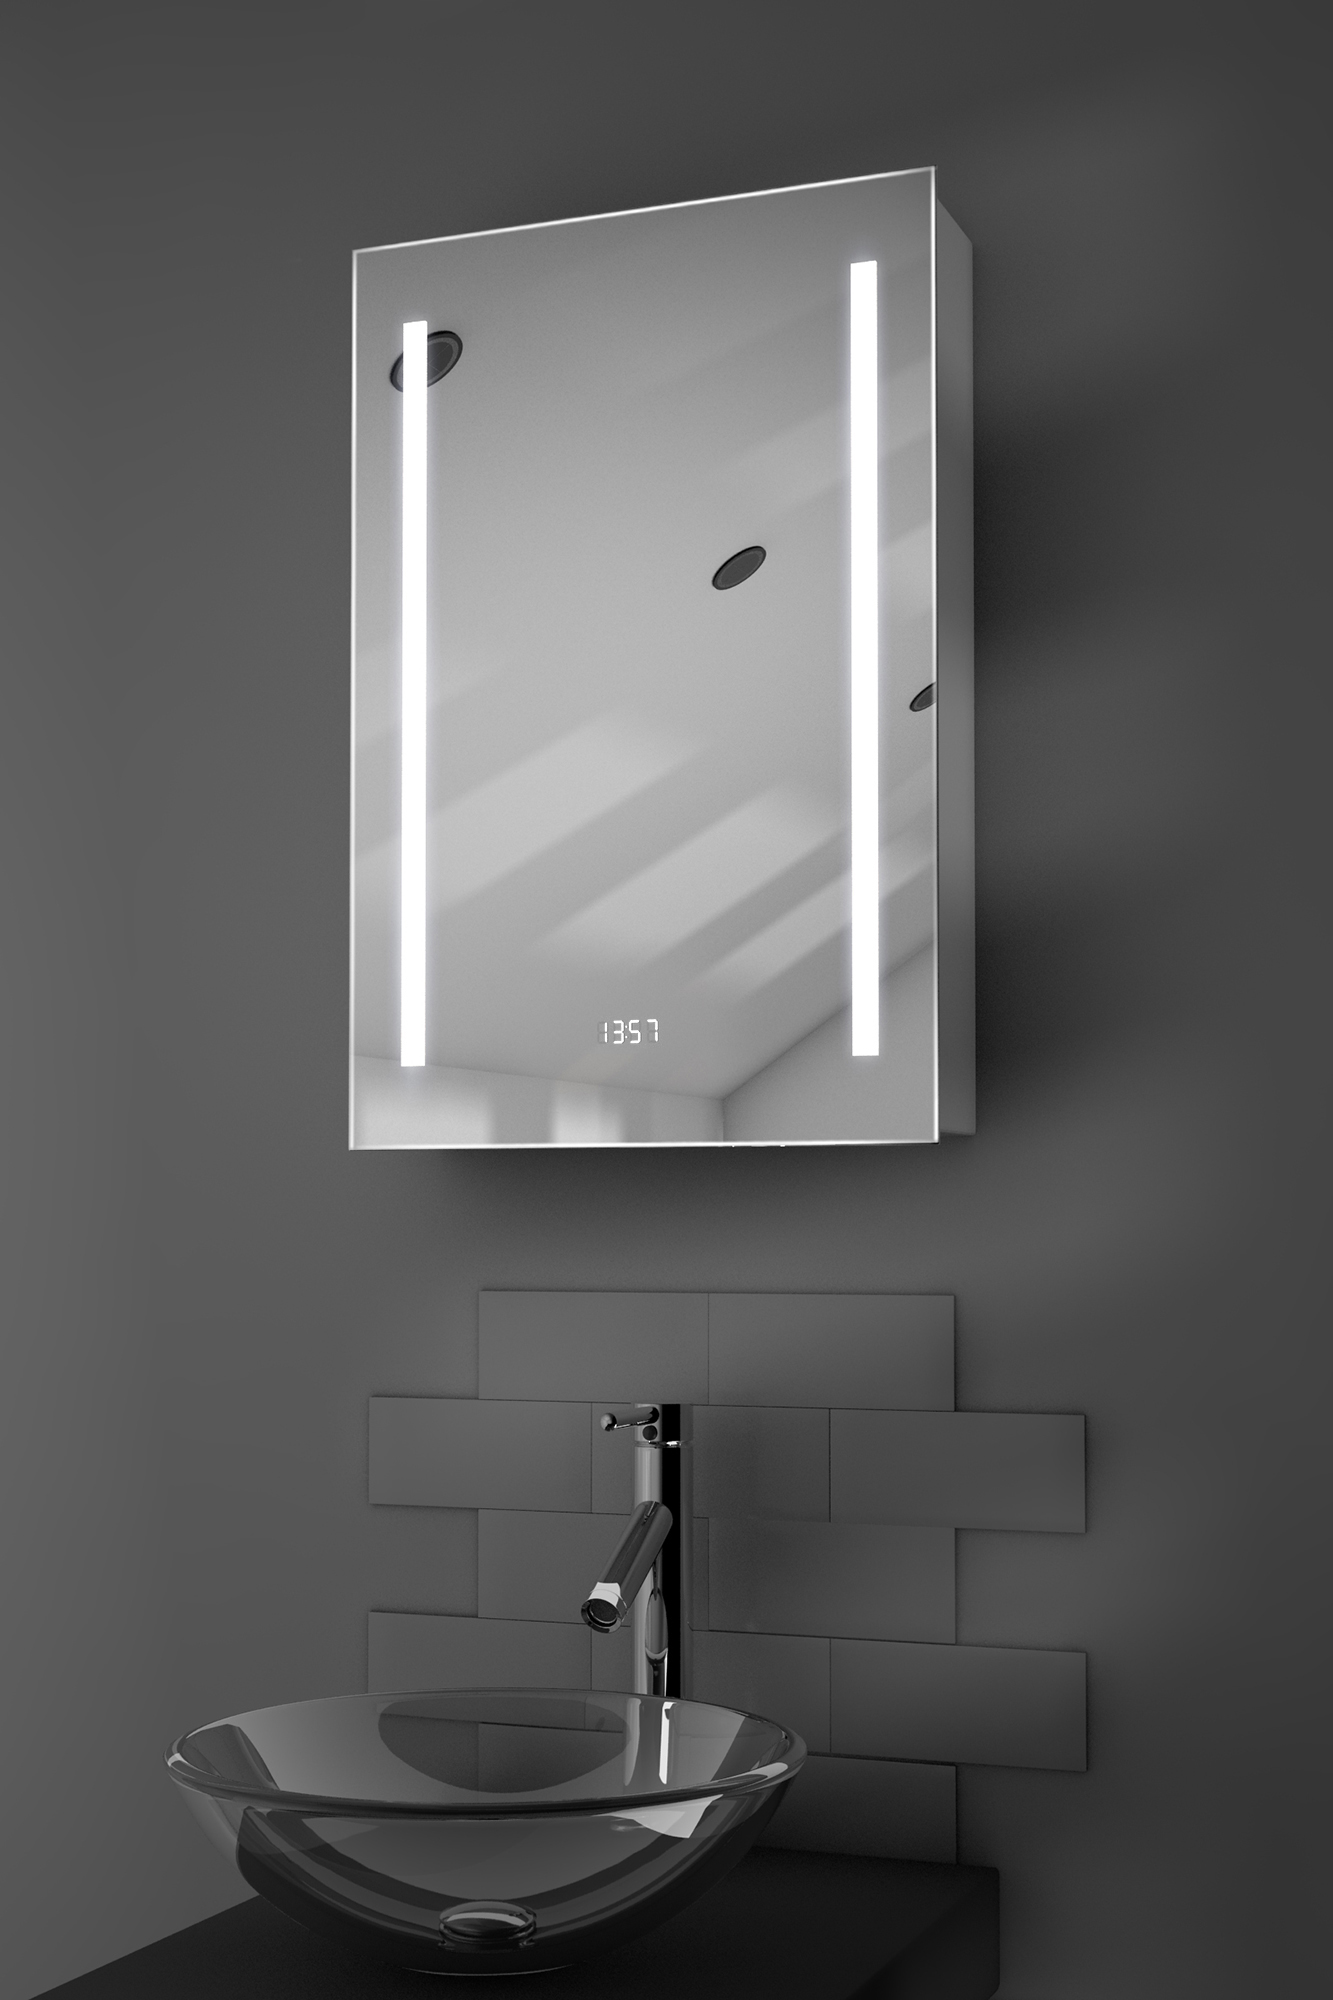 Calais clock led bathroom cabinet with demister pad for Bathroom cabinets led